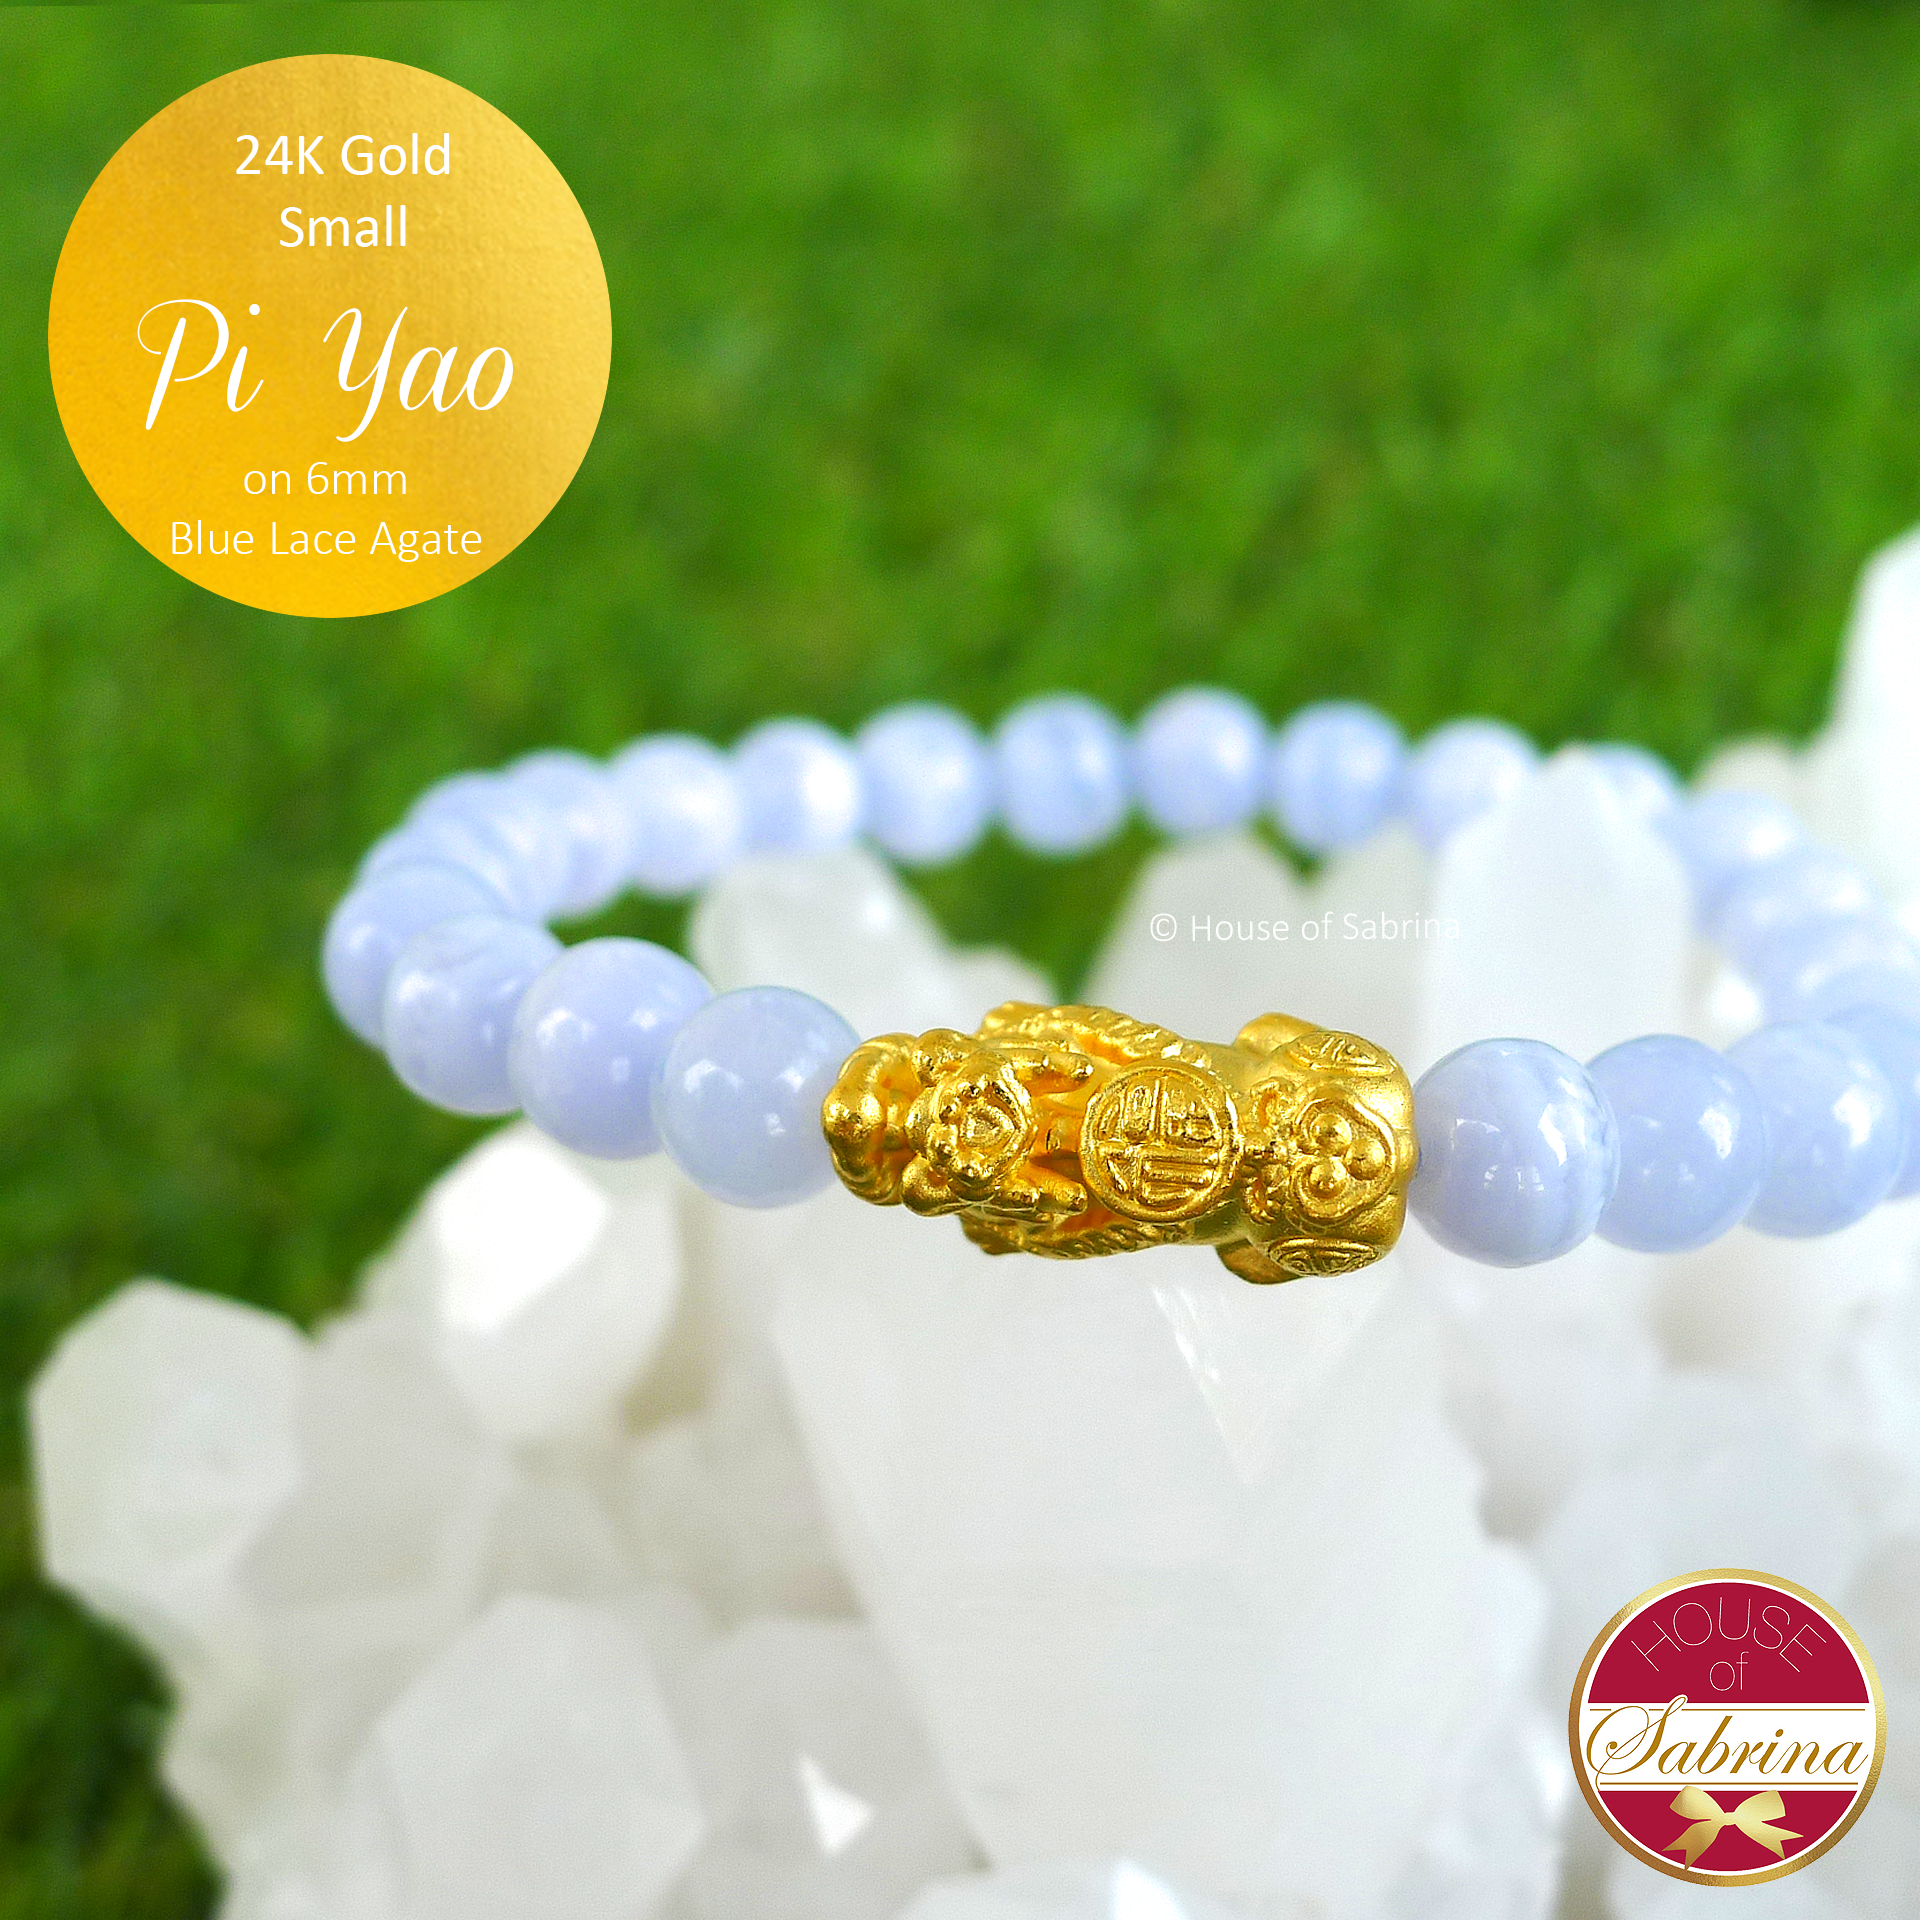 24K Gold Small Pi Yao on 6mm Blue Lace Agate Gemstone Bracelet